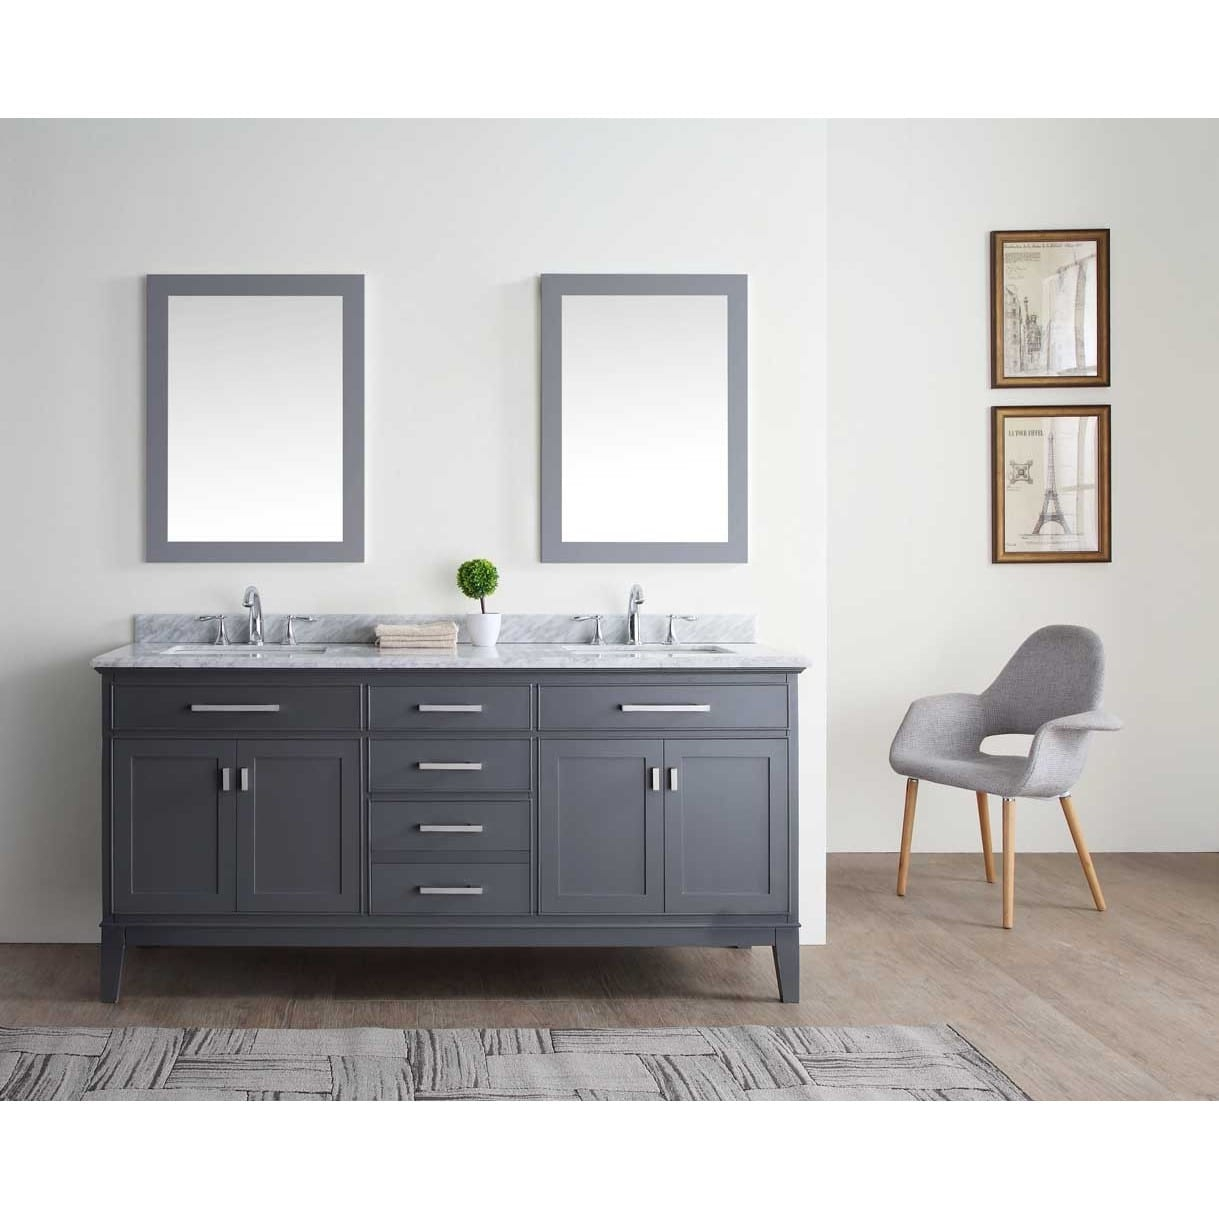 Cool Shop Ari Kitchen And Bath Danny 72-Inch Double Bathroom Vanity Set regarding Awesome Bathroom Vanity Table